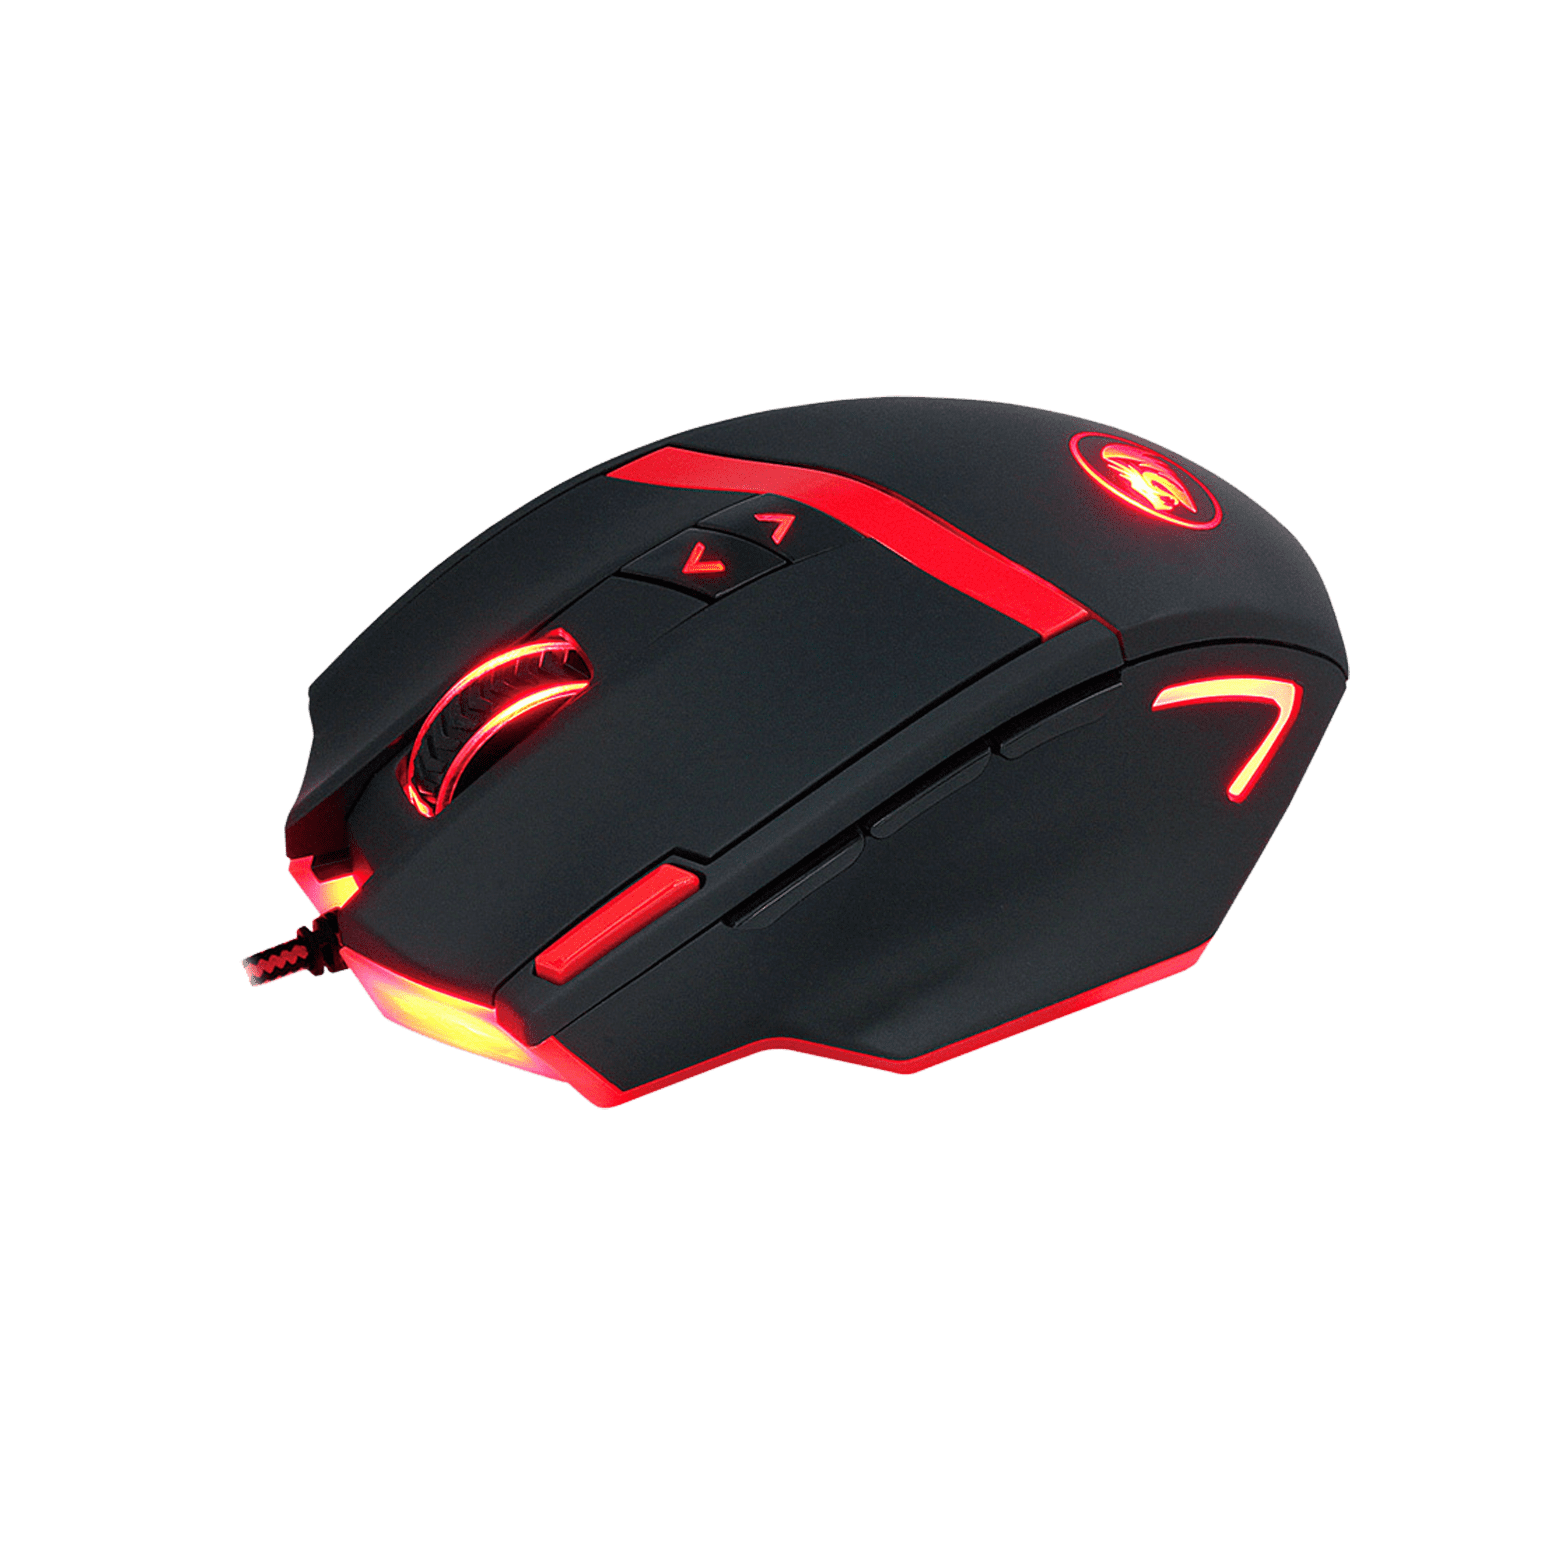 Redragon Mammoth 16400dpi Gaming Mouse Syntech